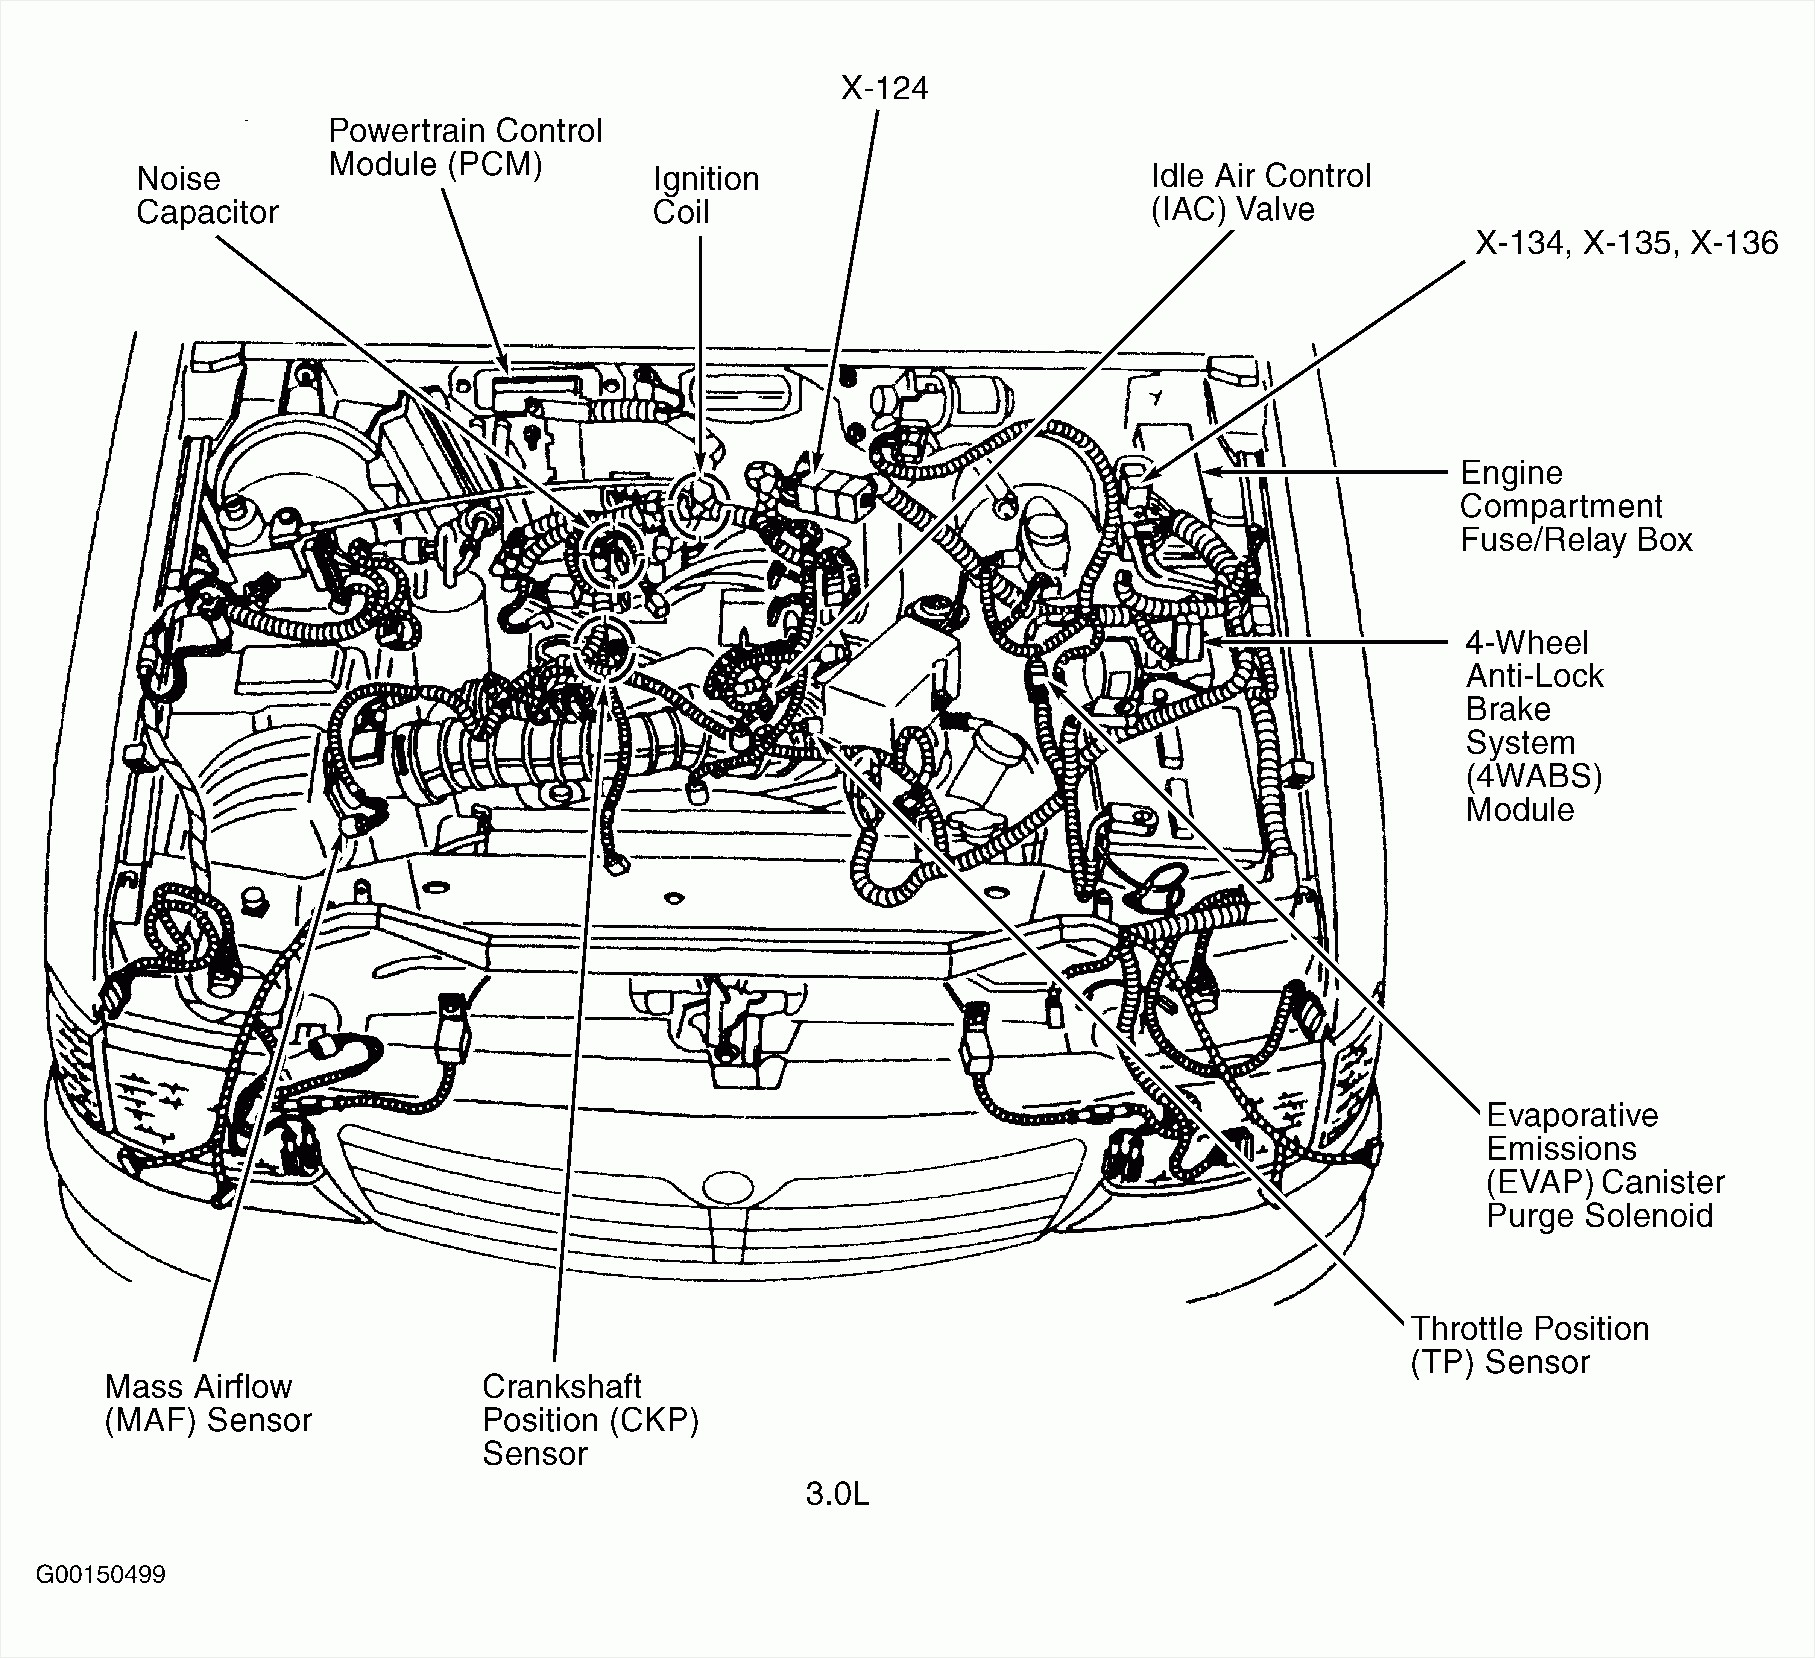 Vw Passat V6 Engine Diagram List Of Schematic Circuit 2000 Wiring 97 Jetta Fuse Box Diagrams Auto Electrical Rh Stanford Edu Uk Co Gov Sanjaydutt Me 2001